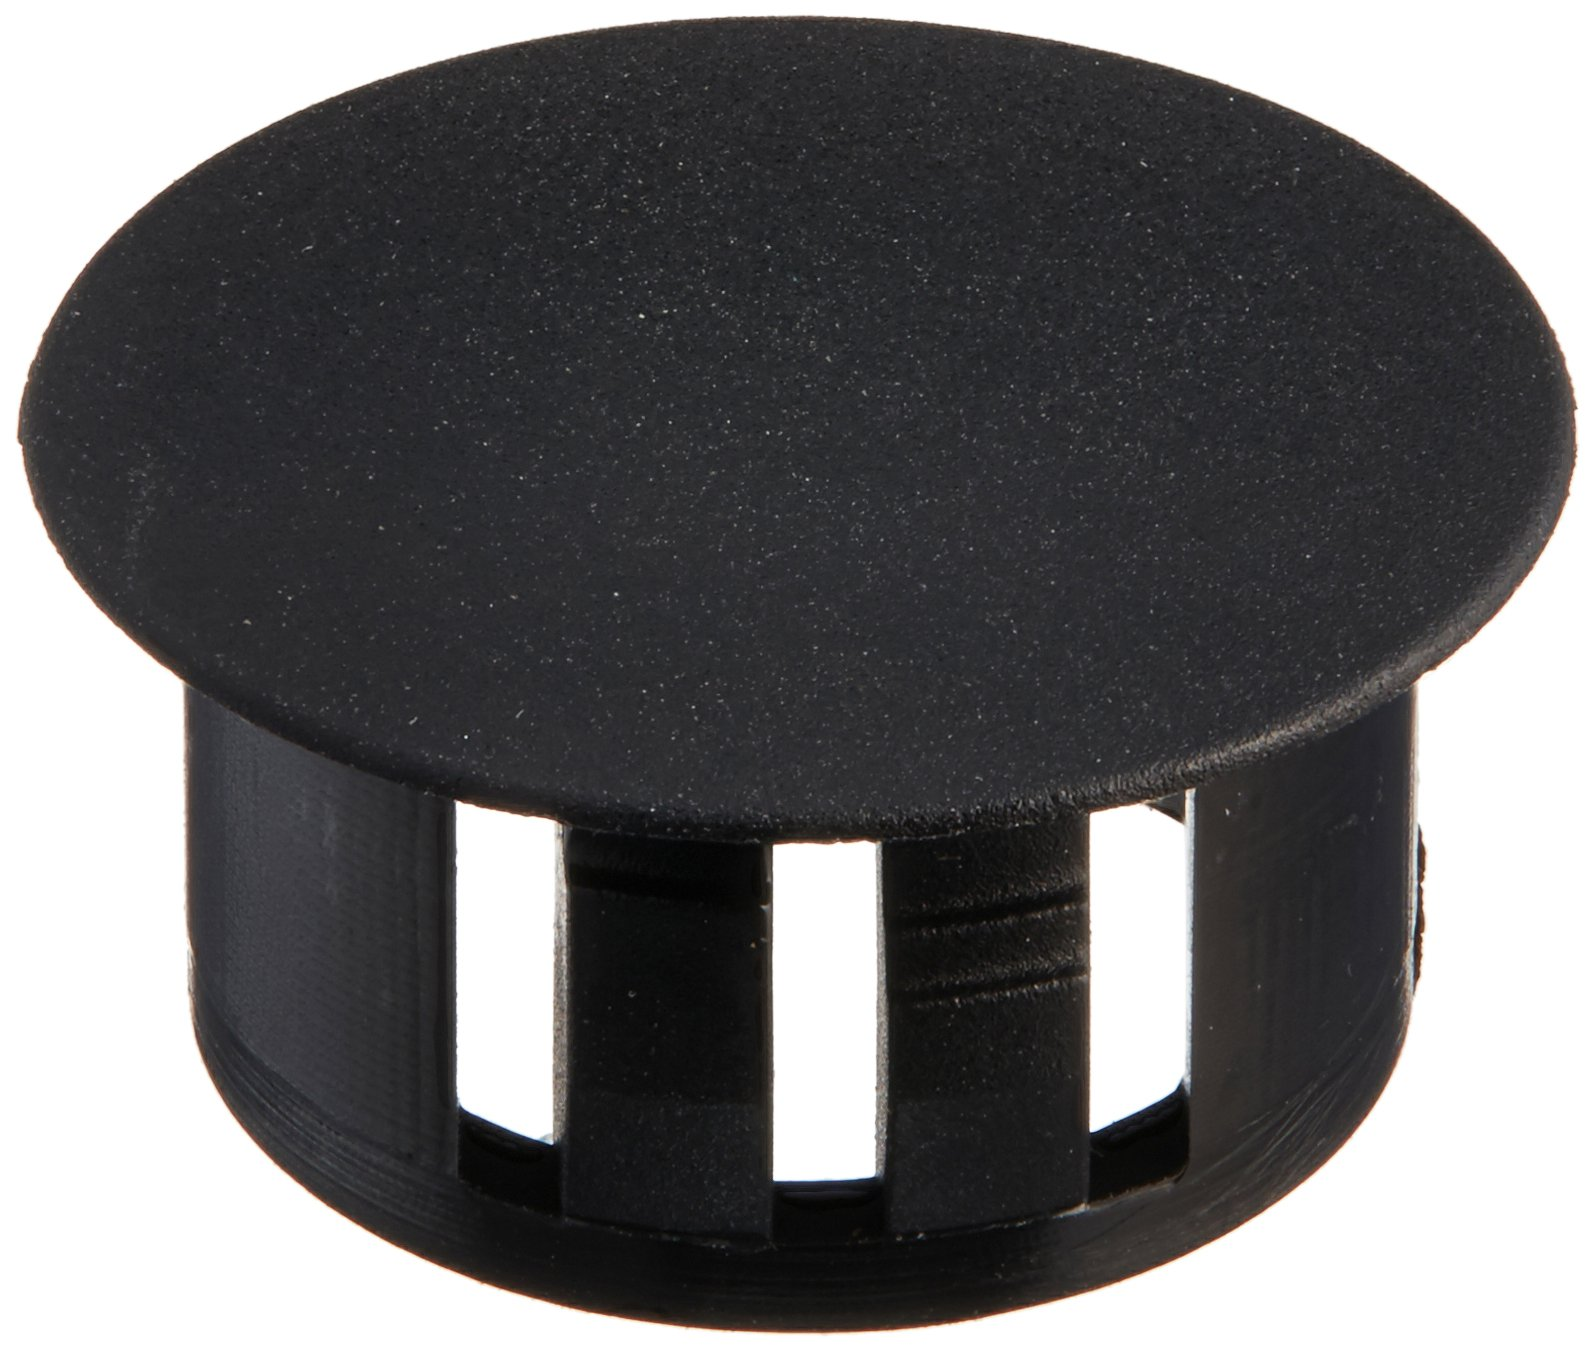 Morris 22388 Plastic Knockout Plug, 5/8-Inch, Black, 10-Pack